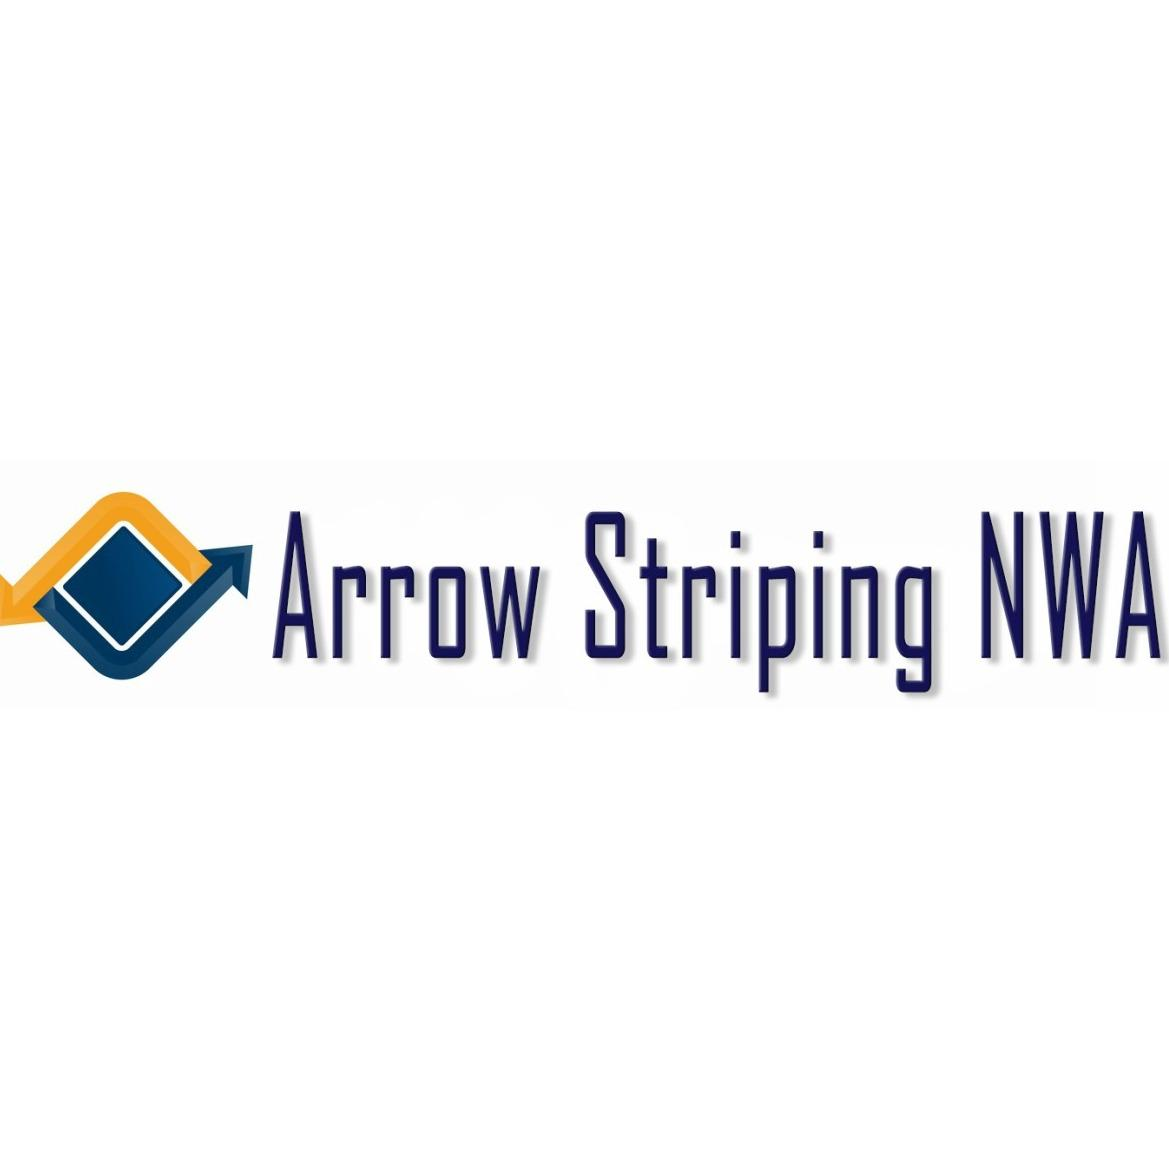 Arrow Striping NWA